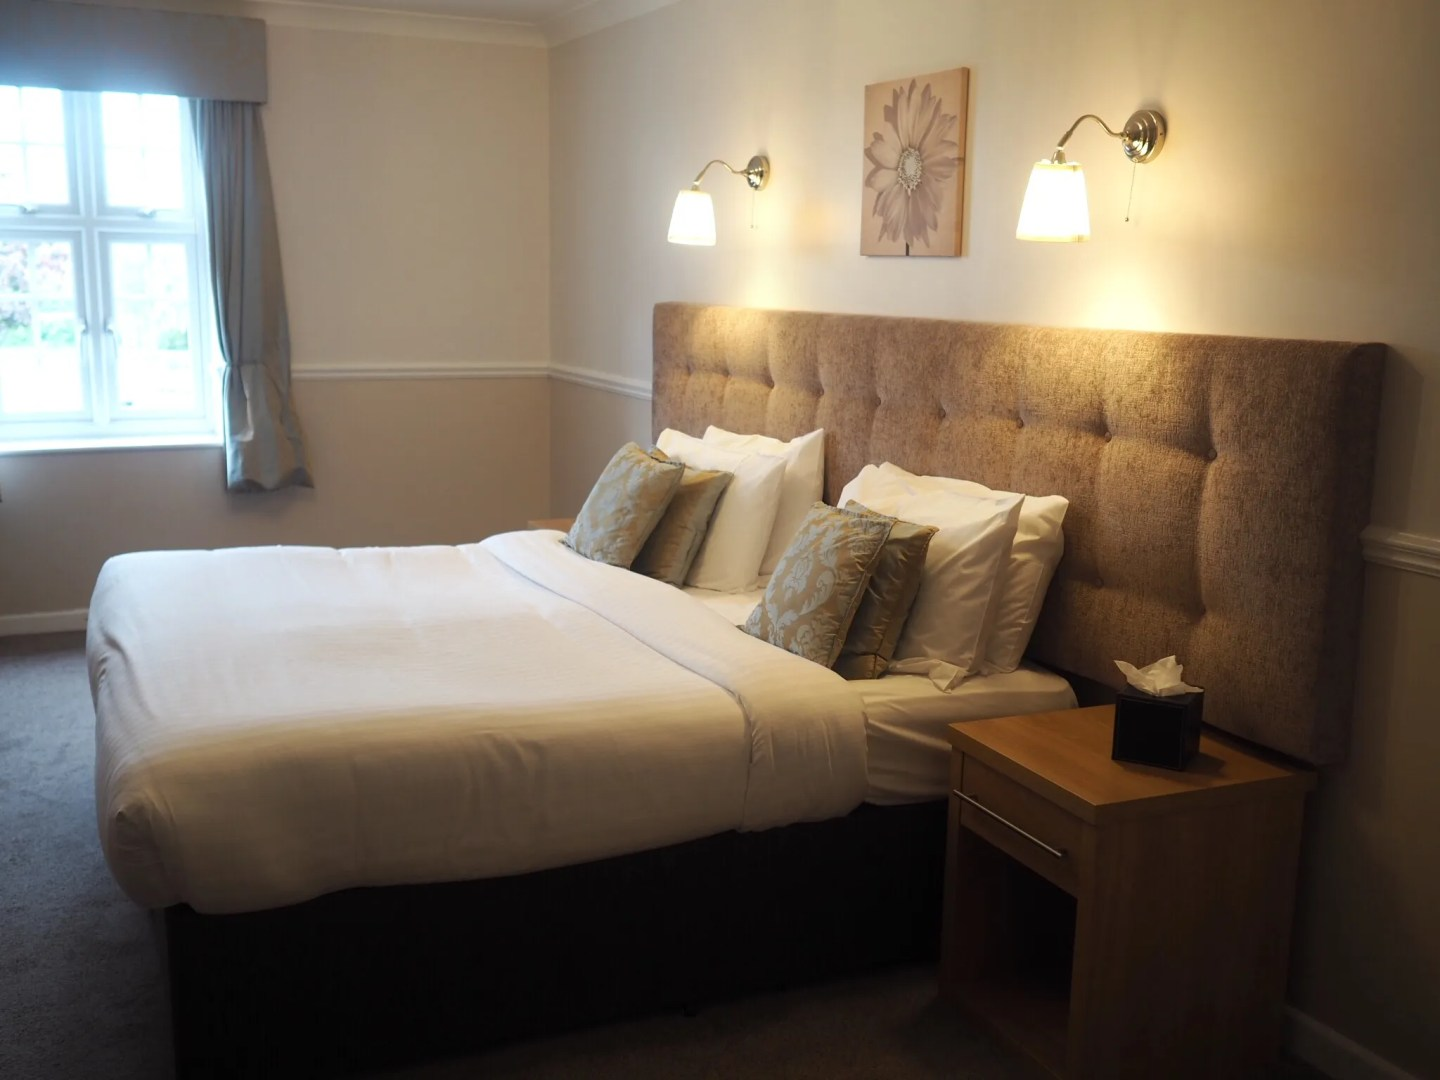 What-LizzyLoves-Bank-House-Hotel-spa-review-Worcester-executive-room